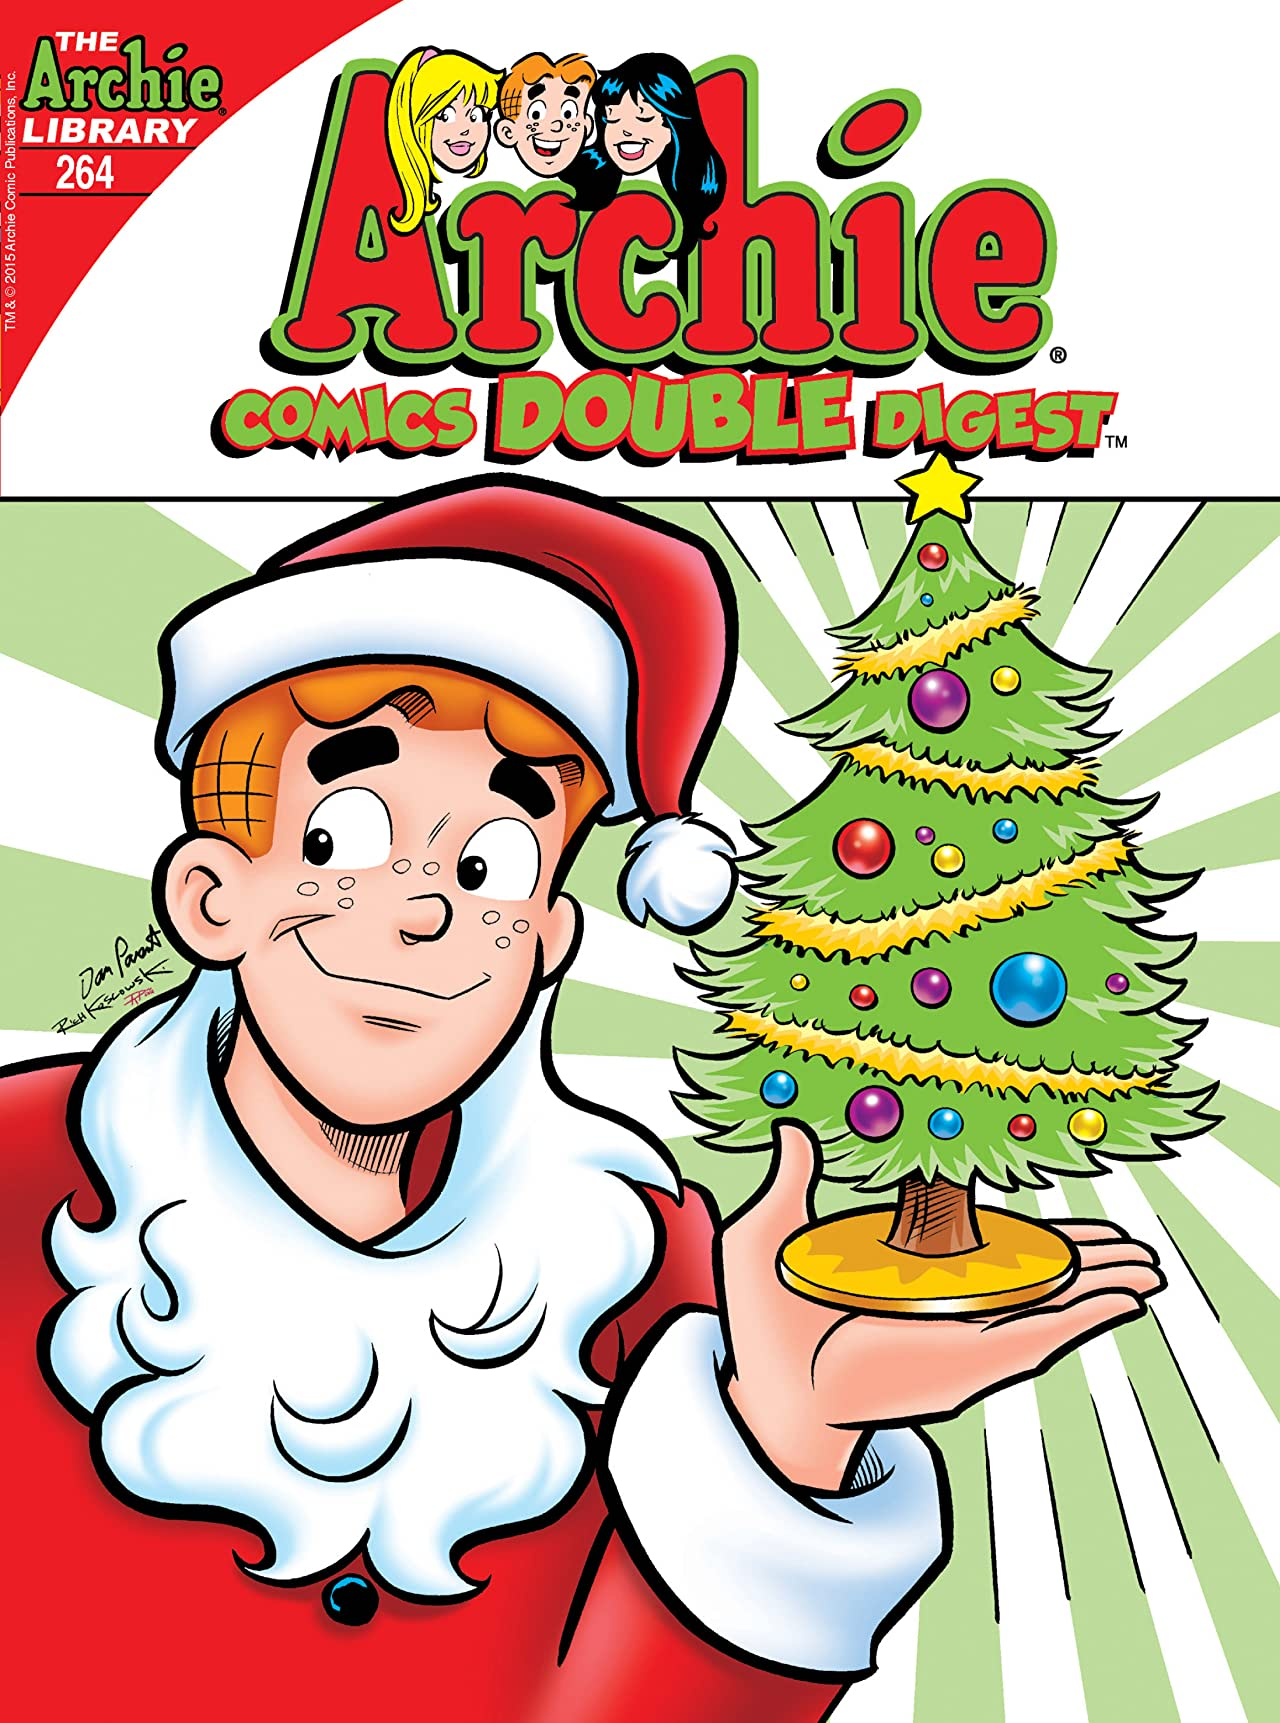 Archie Comics Double Digest #264